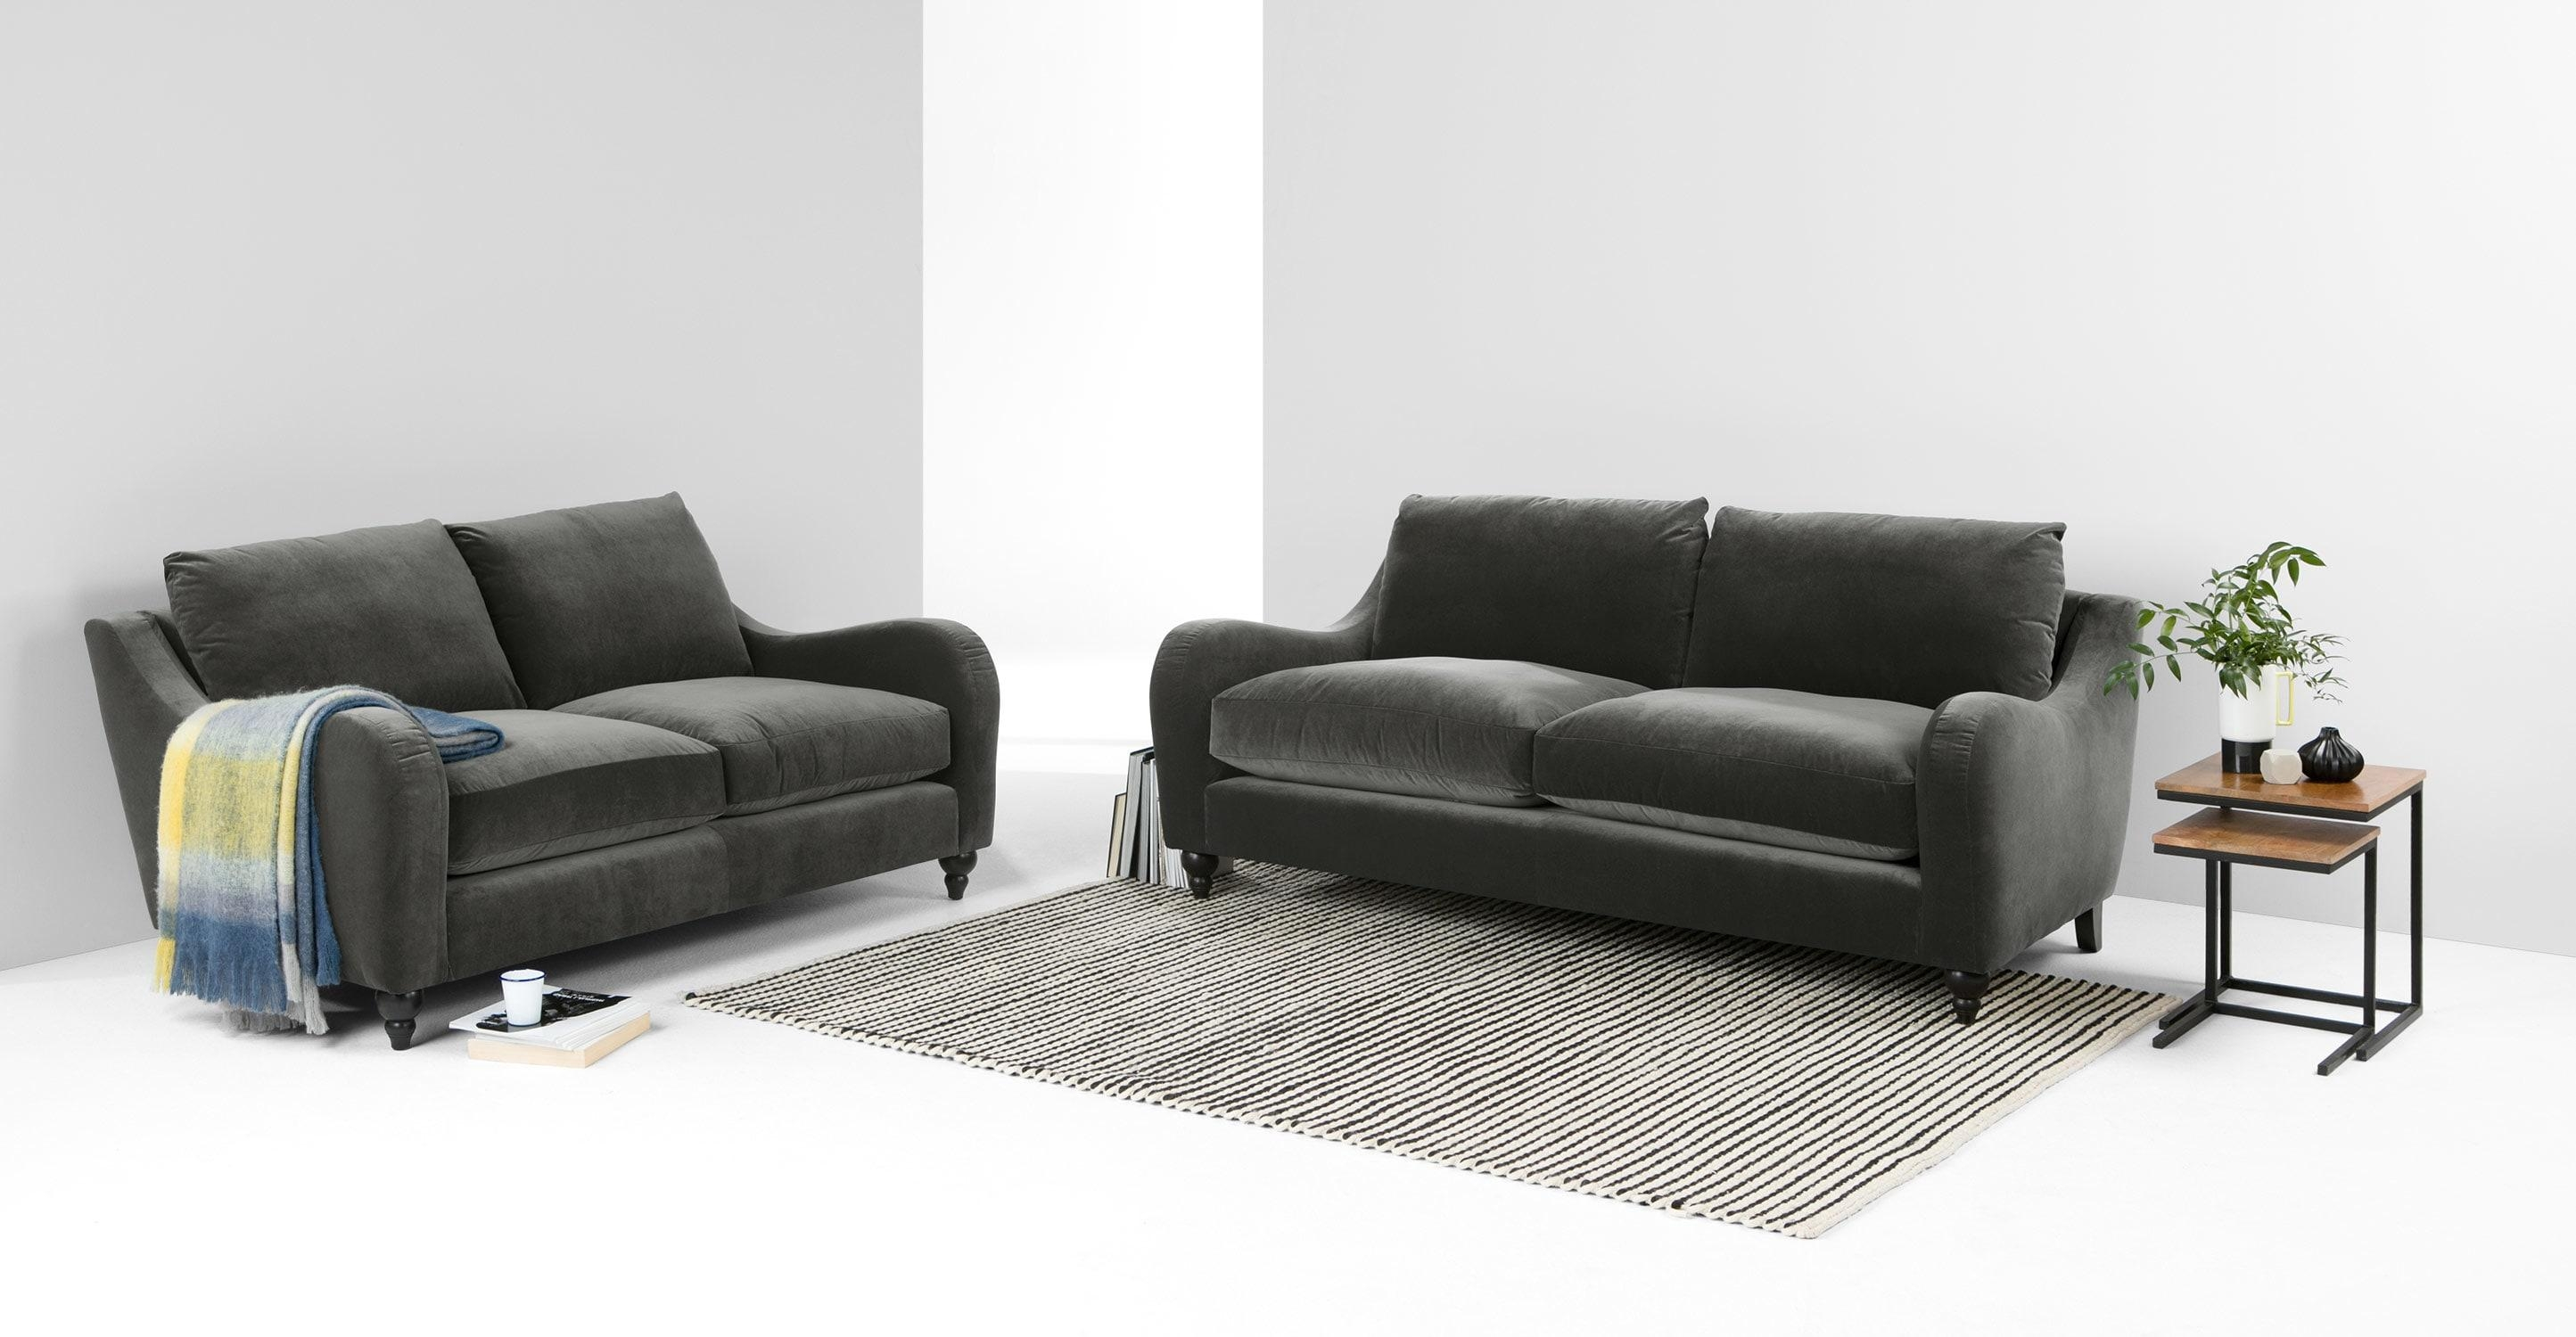 funky sofas and chairs molded plastic sofa 2018 latest for sale ideas